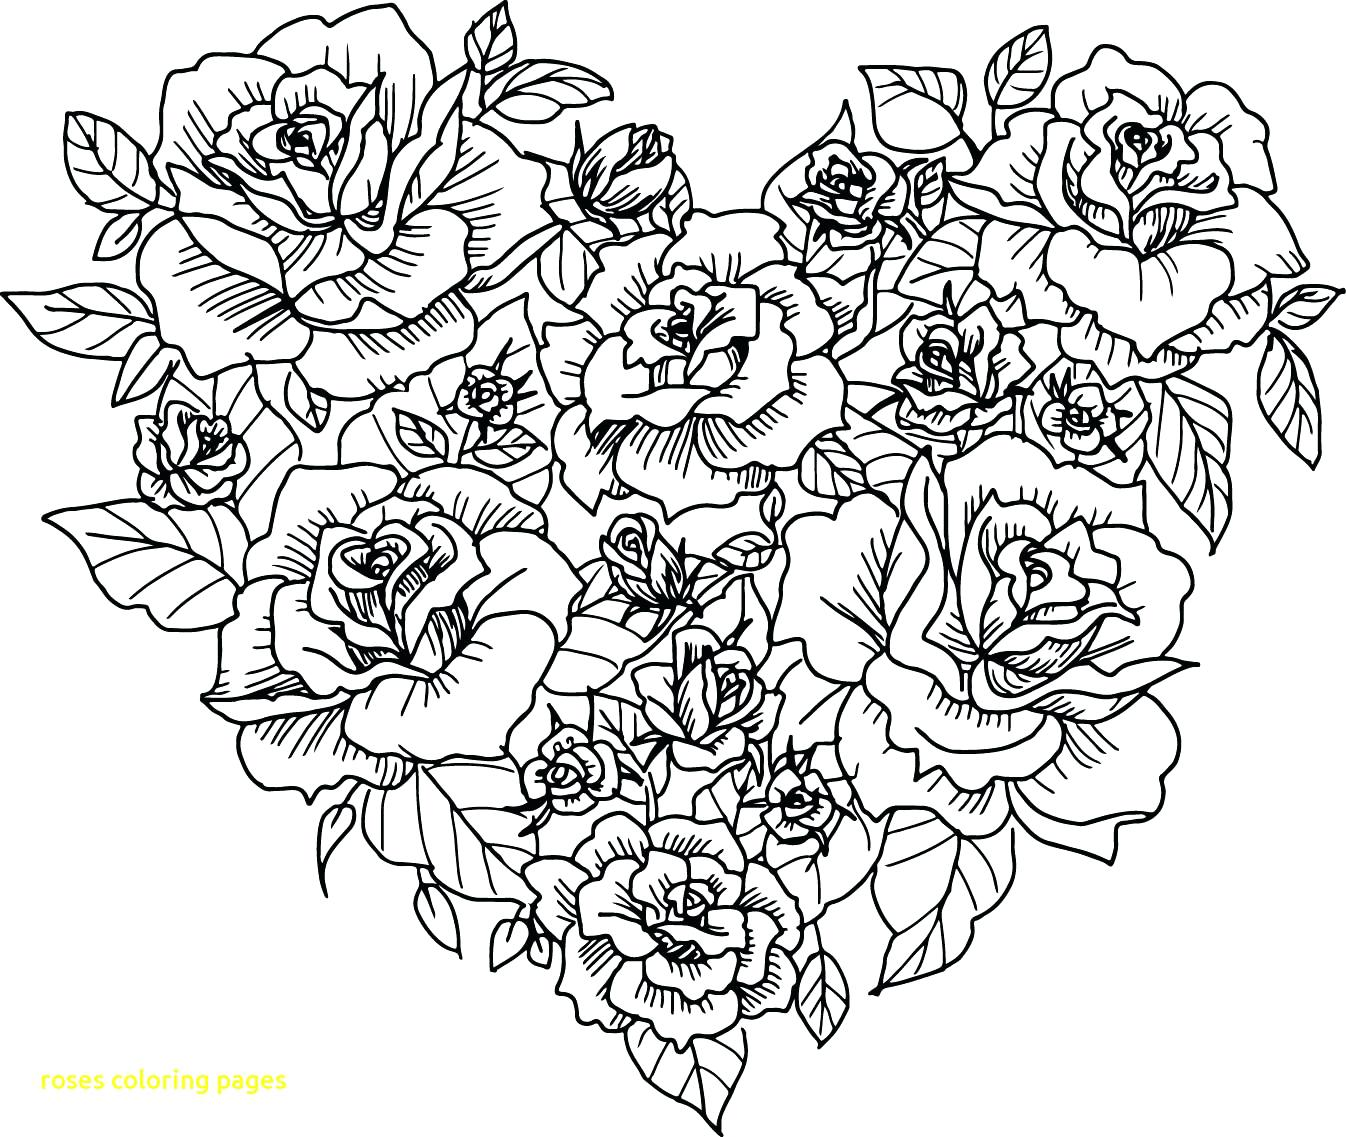 1346x1137 Coloring Pages Coloring Pages Of Roses Page Rose Mandala